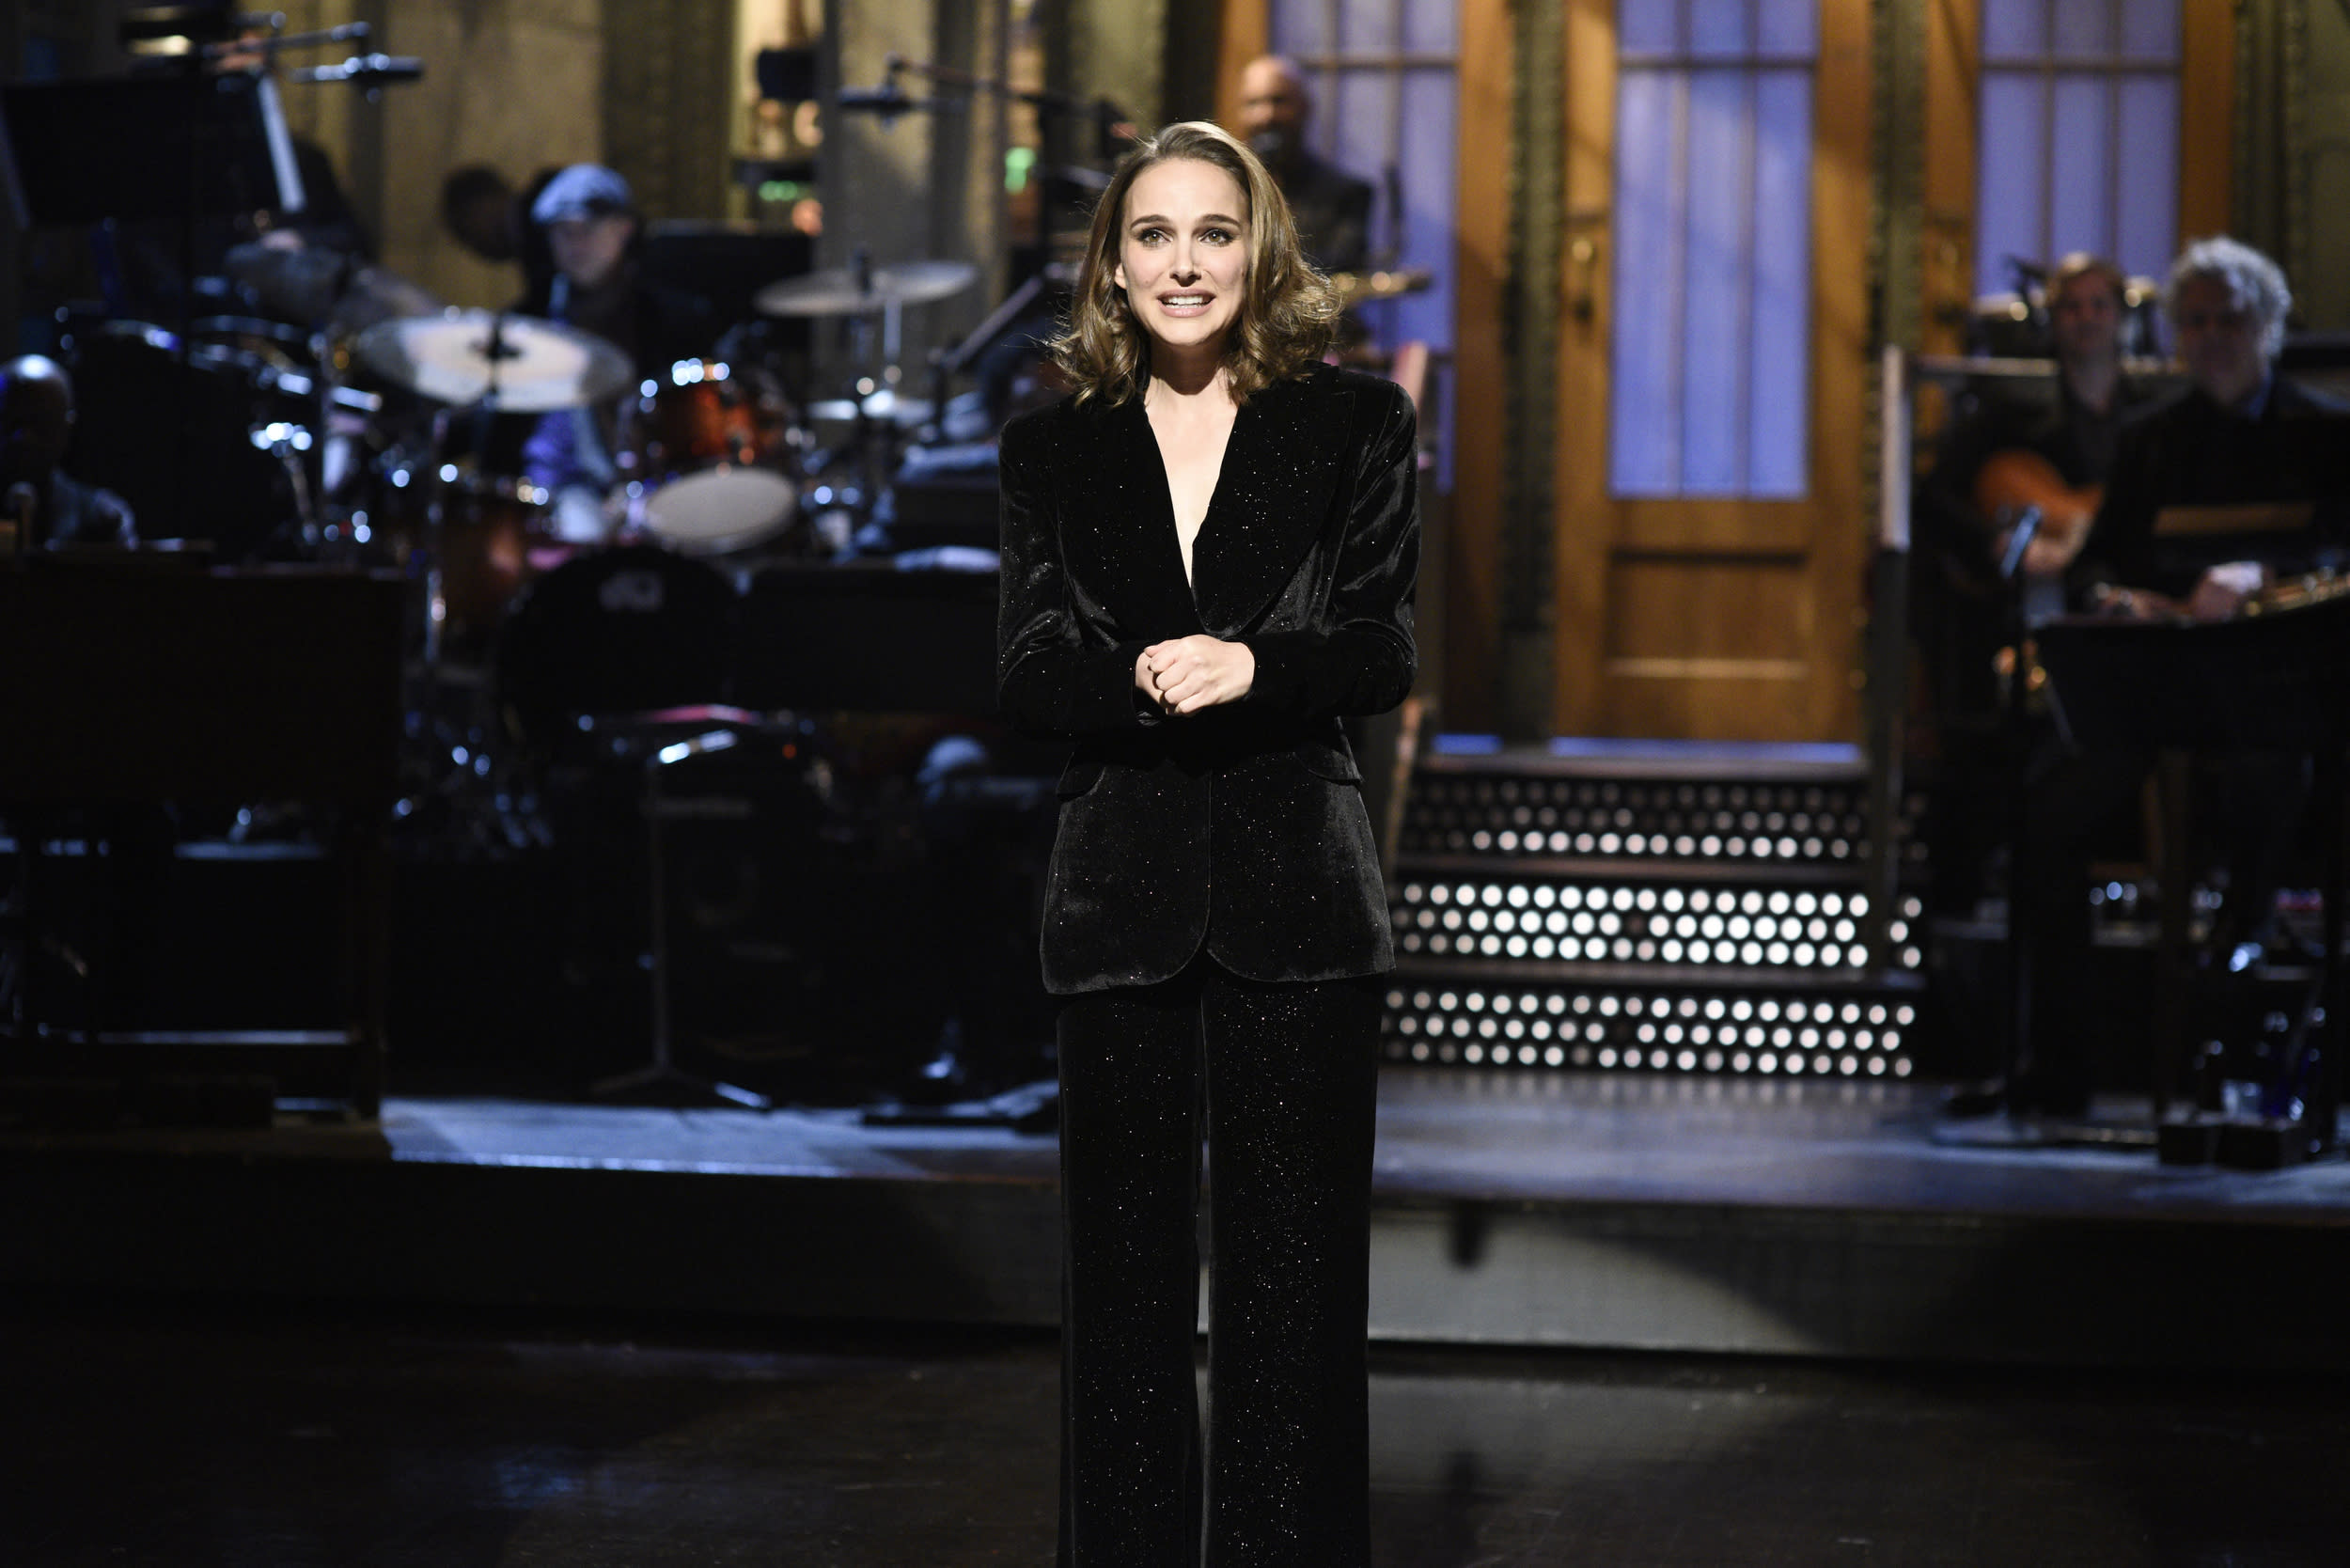 SATURDAY NIGHT LIVE -- Episode 1738 'Natalie Portman' -- Pictured: Natalie Portman during the opening monologue in Studio 8H on Saturday, February 3, 2018 -- (Photo by: Will Heath/NBC)